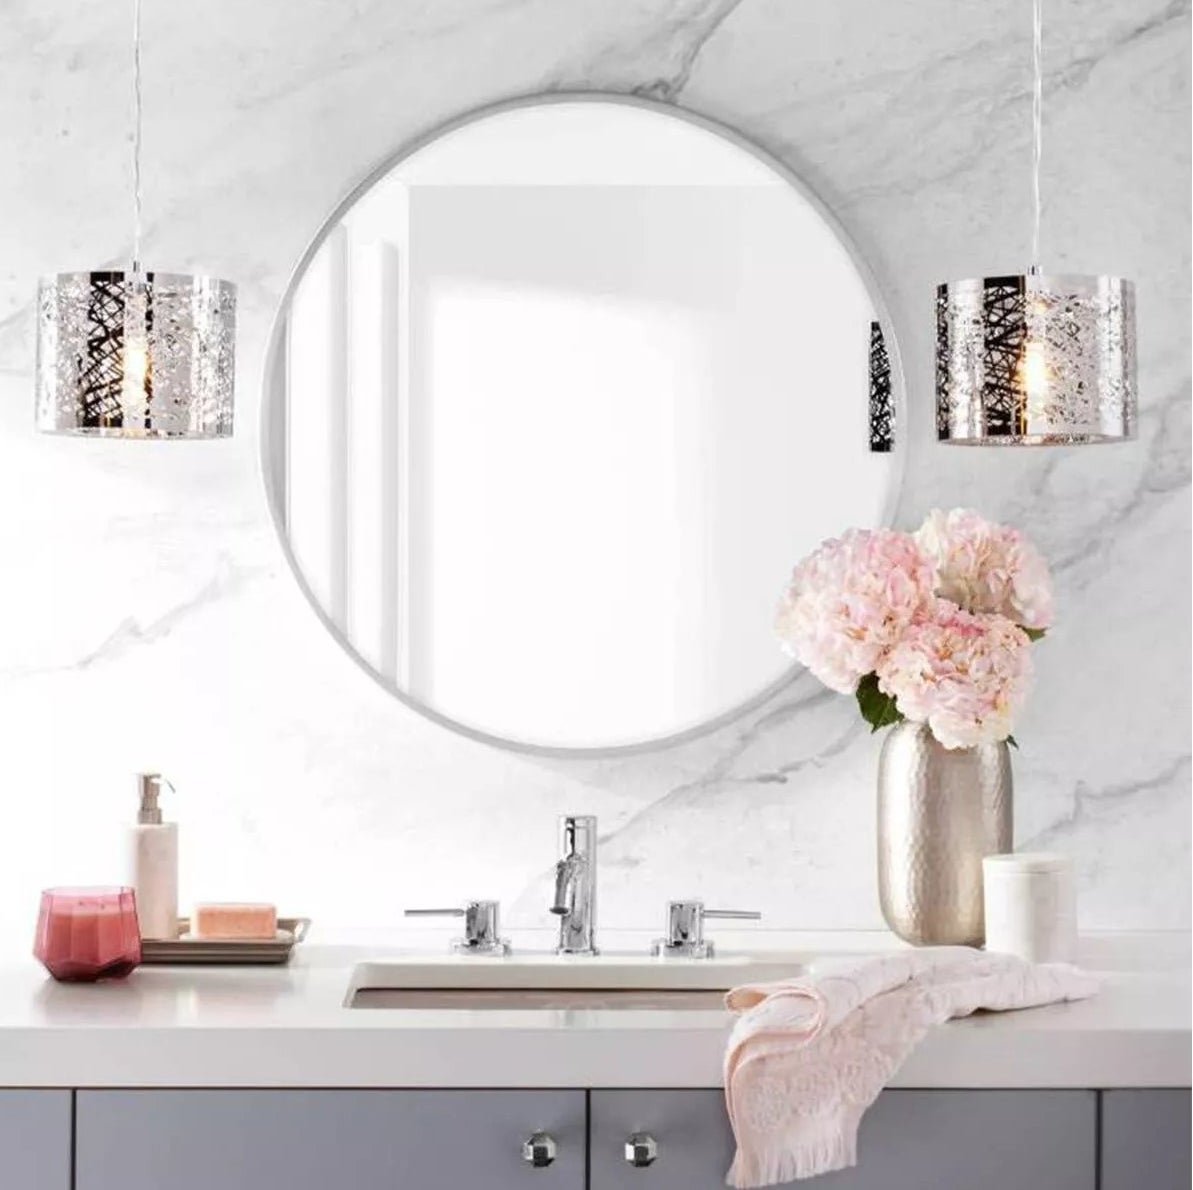 The round mirror with white trim hanging in a bathroom